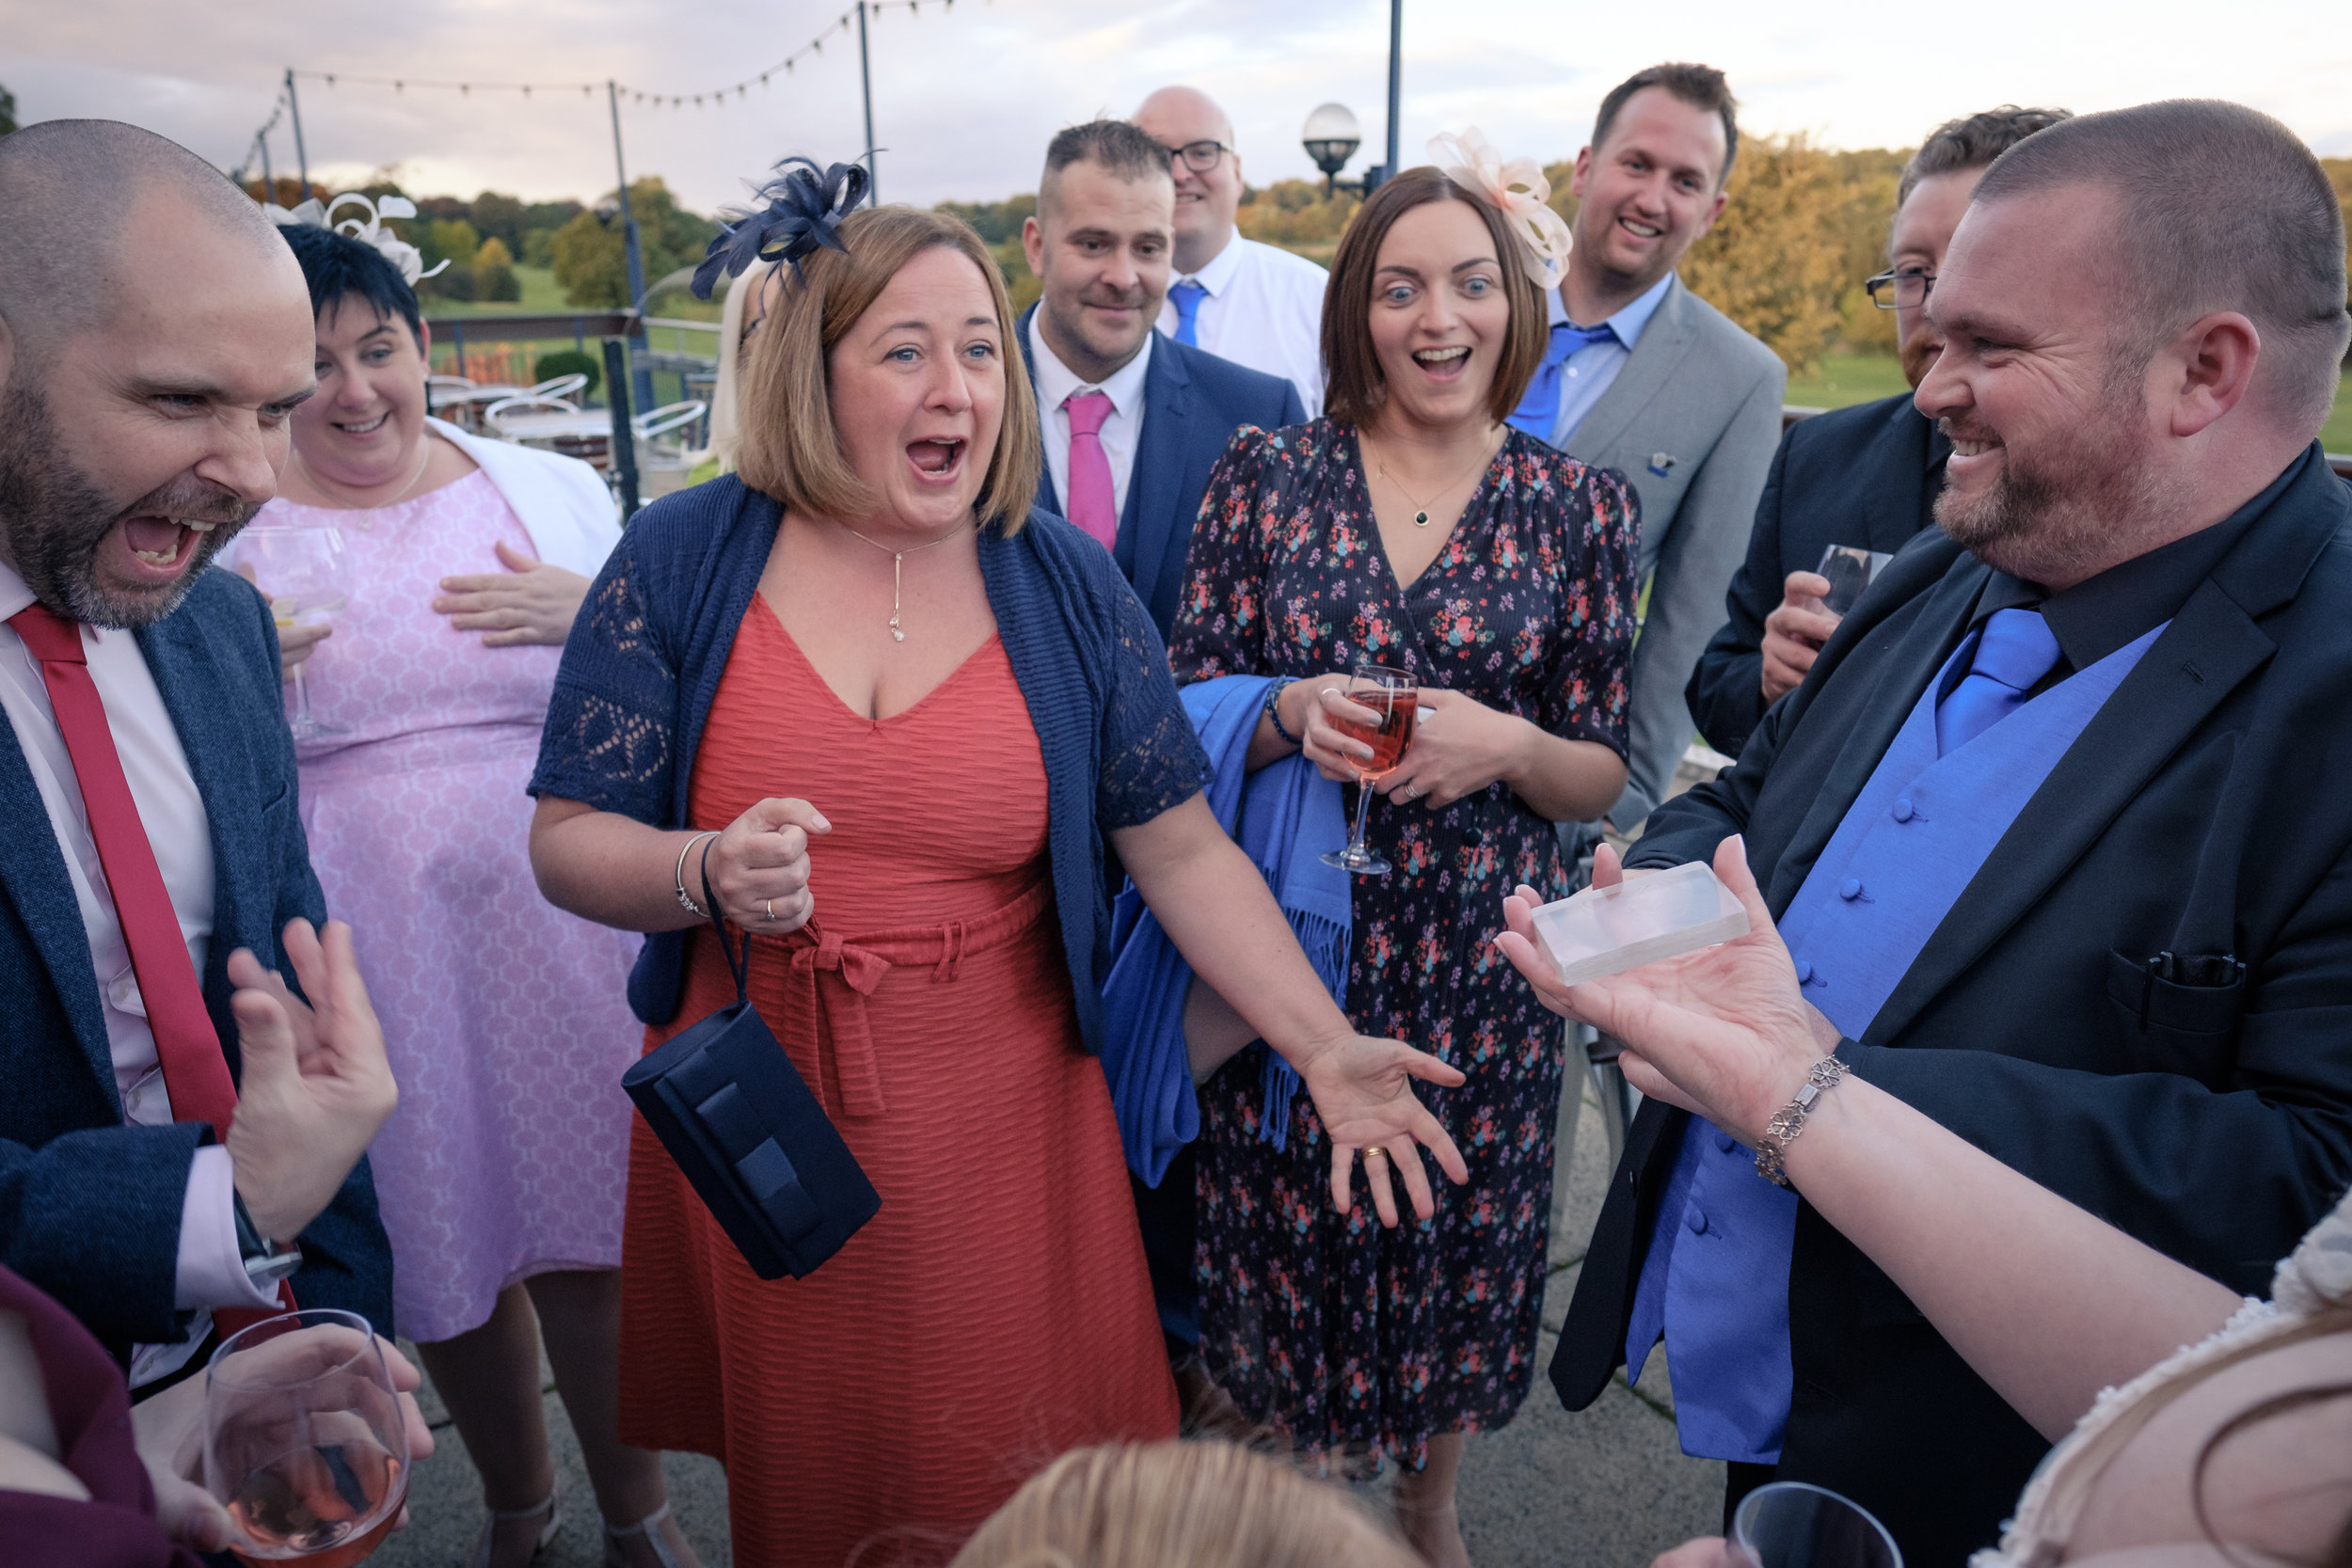 Morley Hayes wedding guests react to magic trick